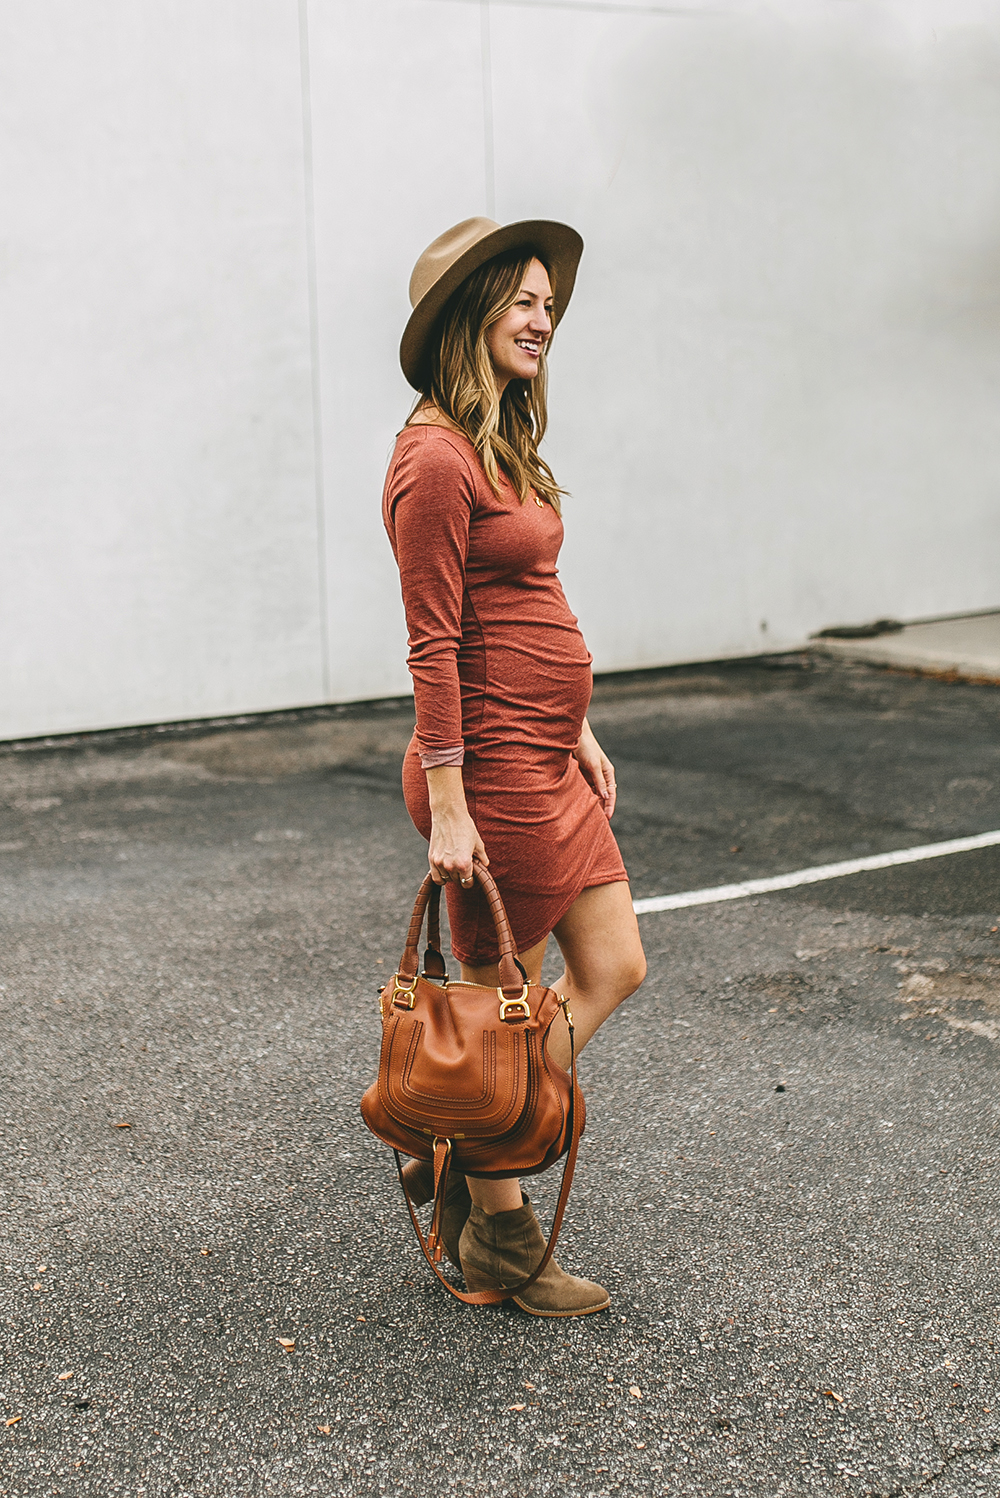 livvyland-blog-olivia-watson-austin-texas-fashion-style-blogger-bohemian-maternity-dress-cute-pregnancy-outfit-idea-4